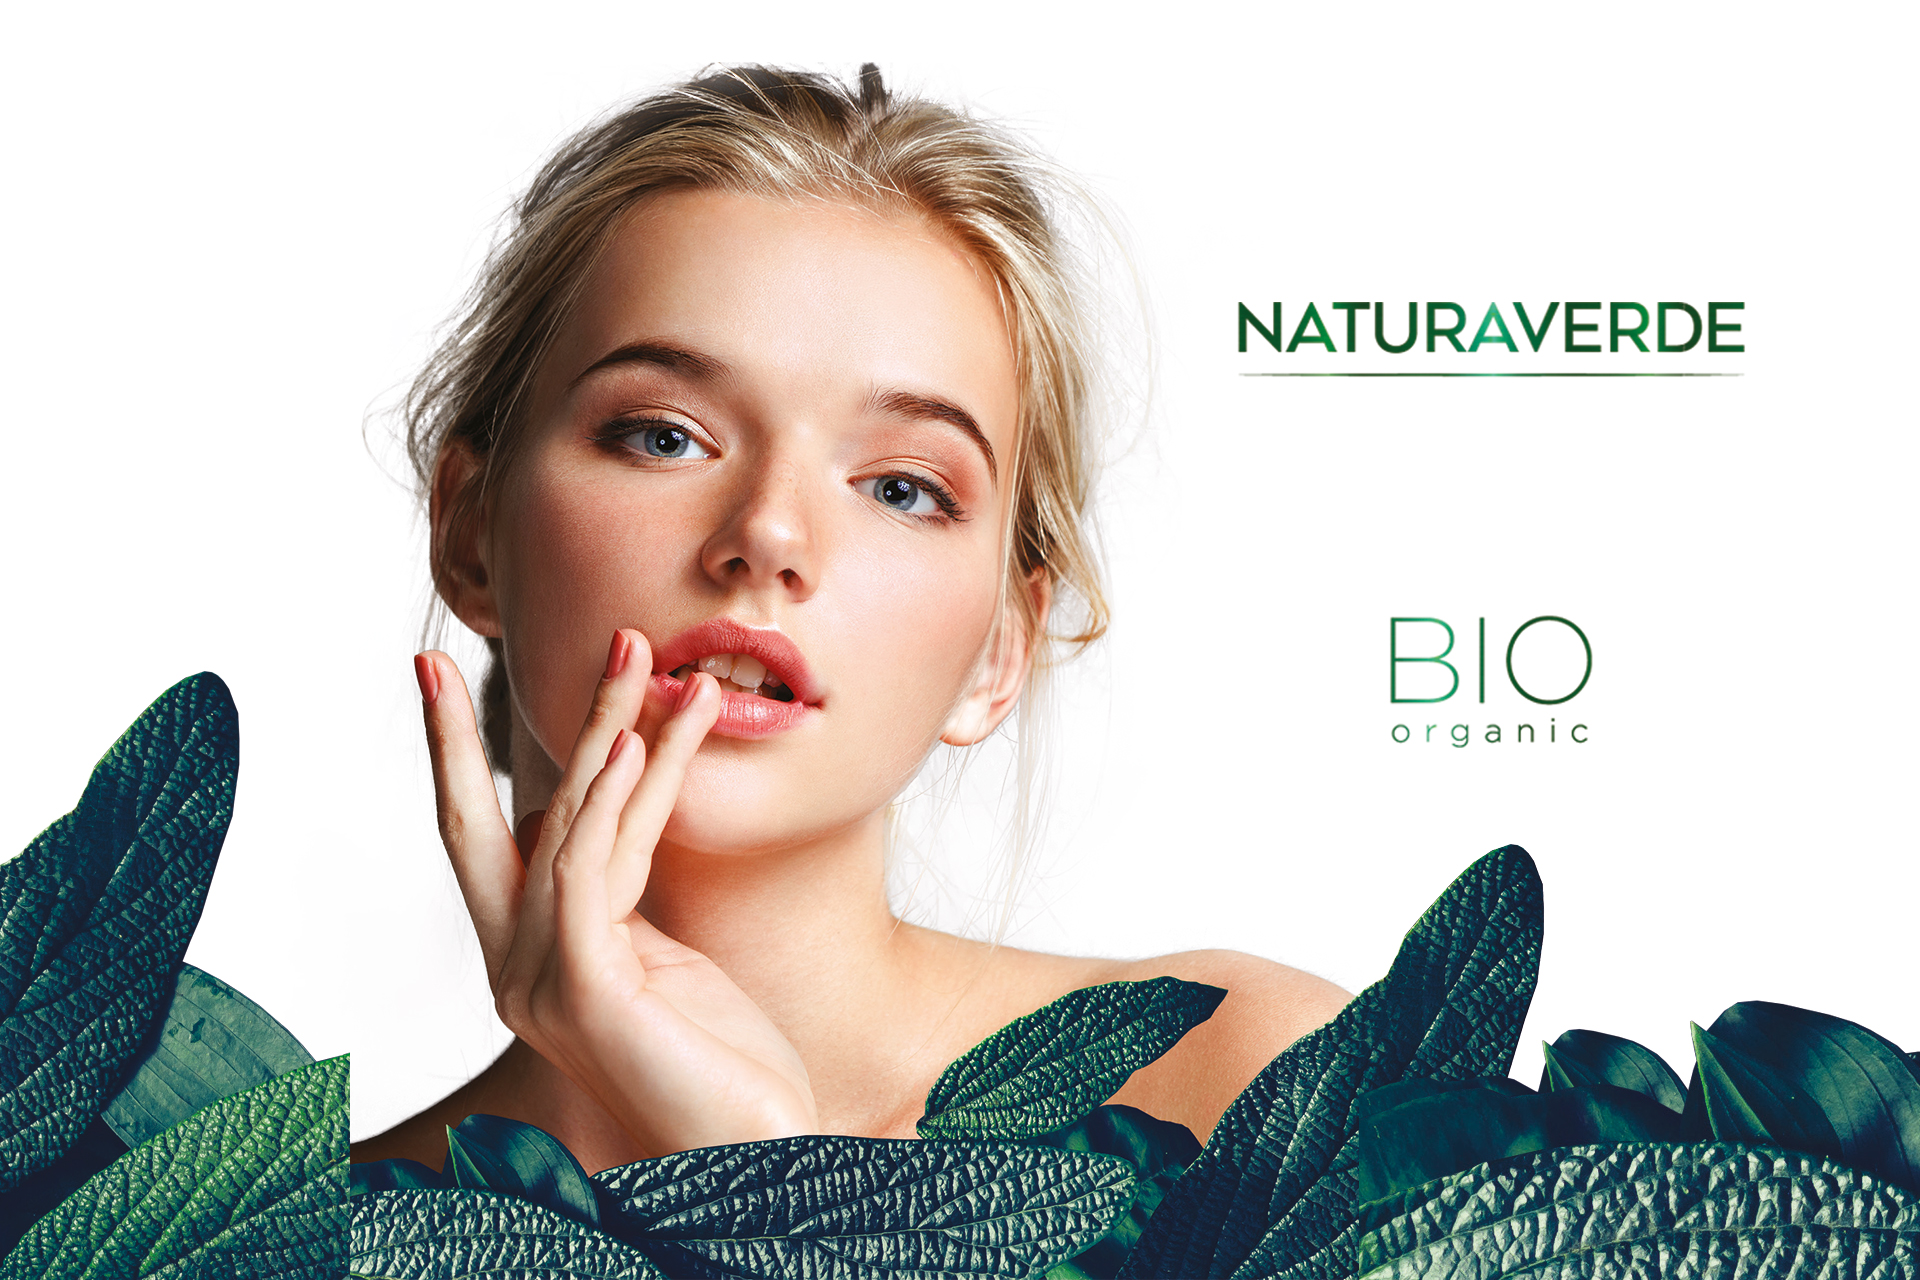 naturaverde make up